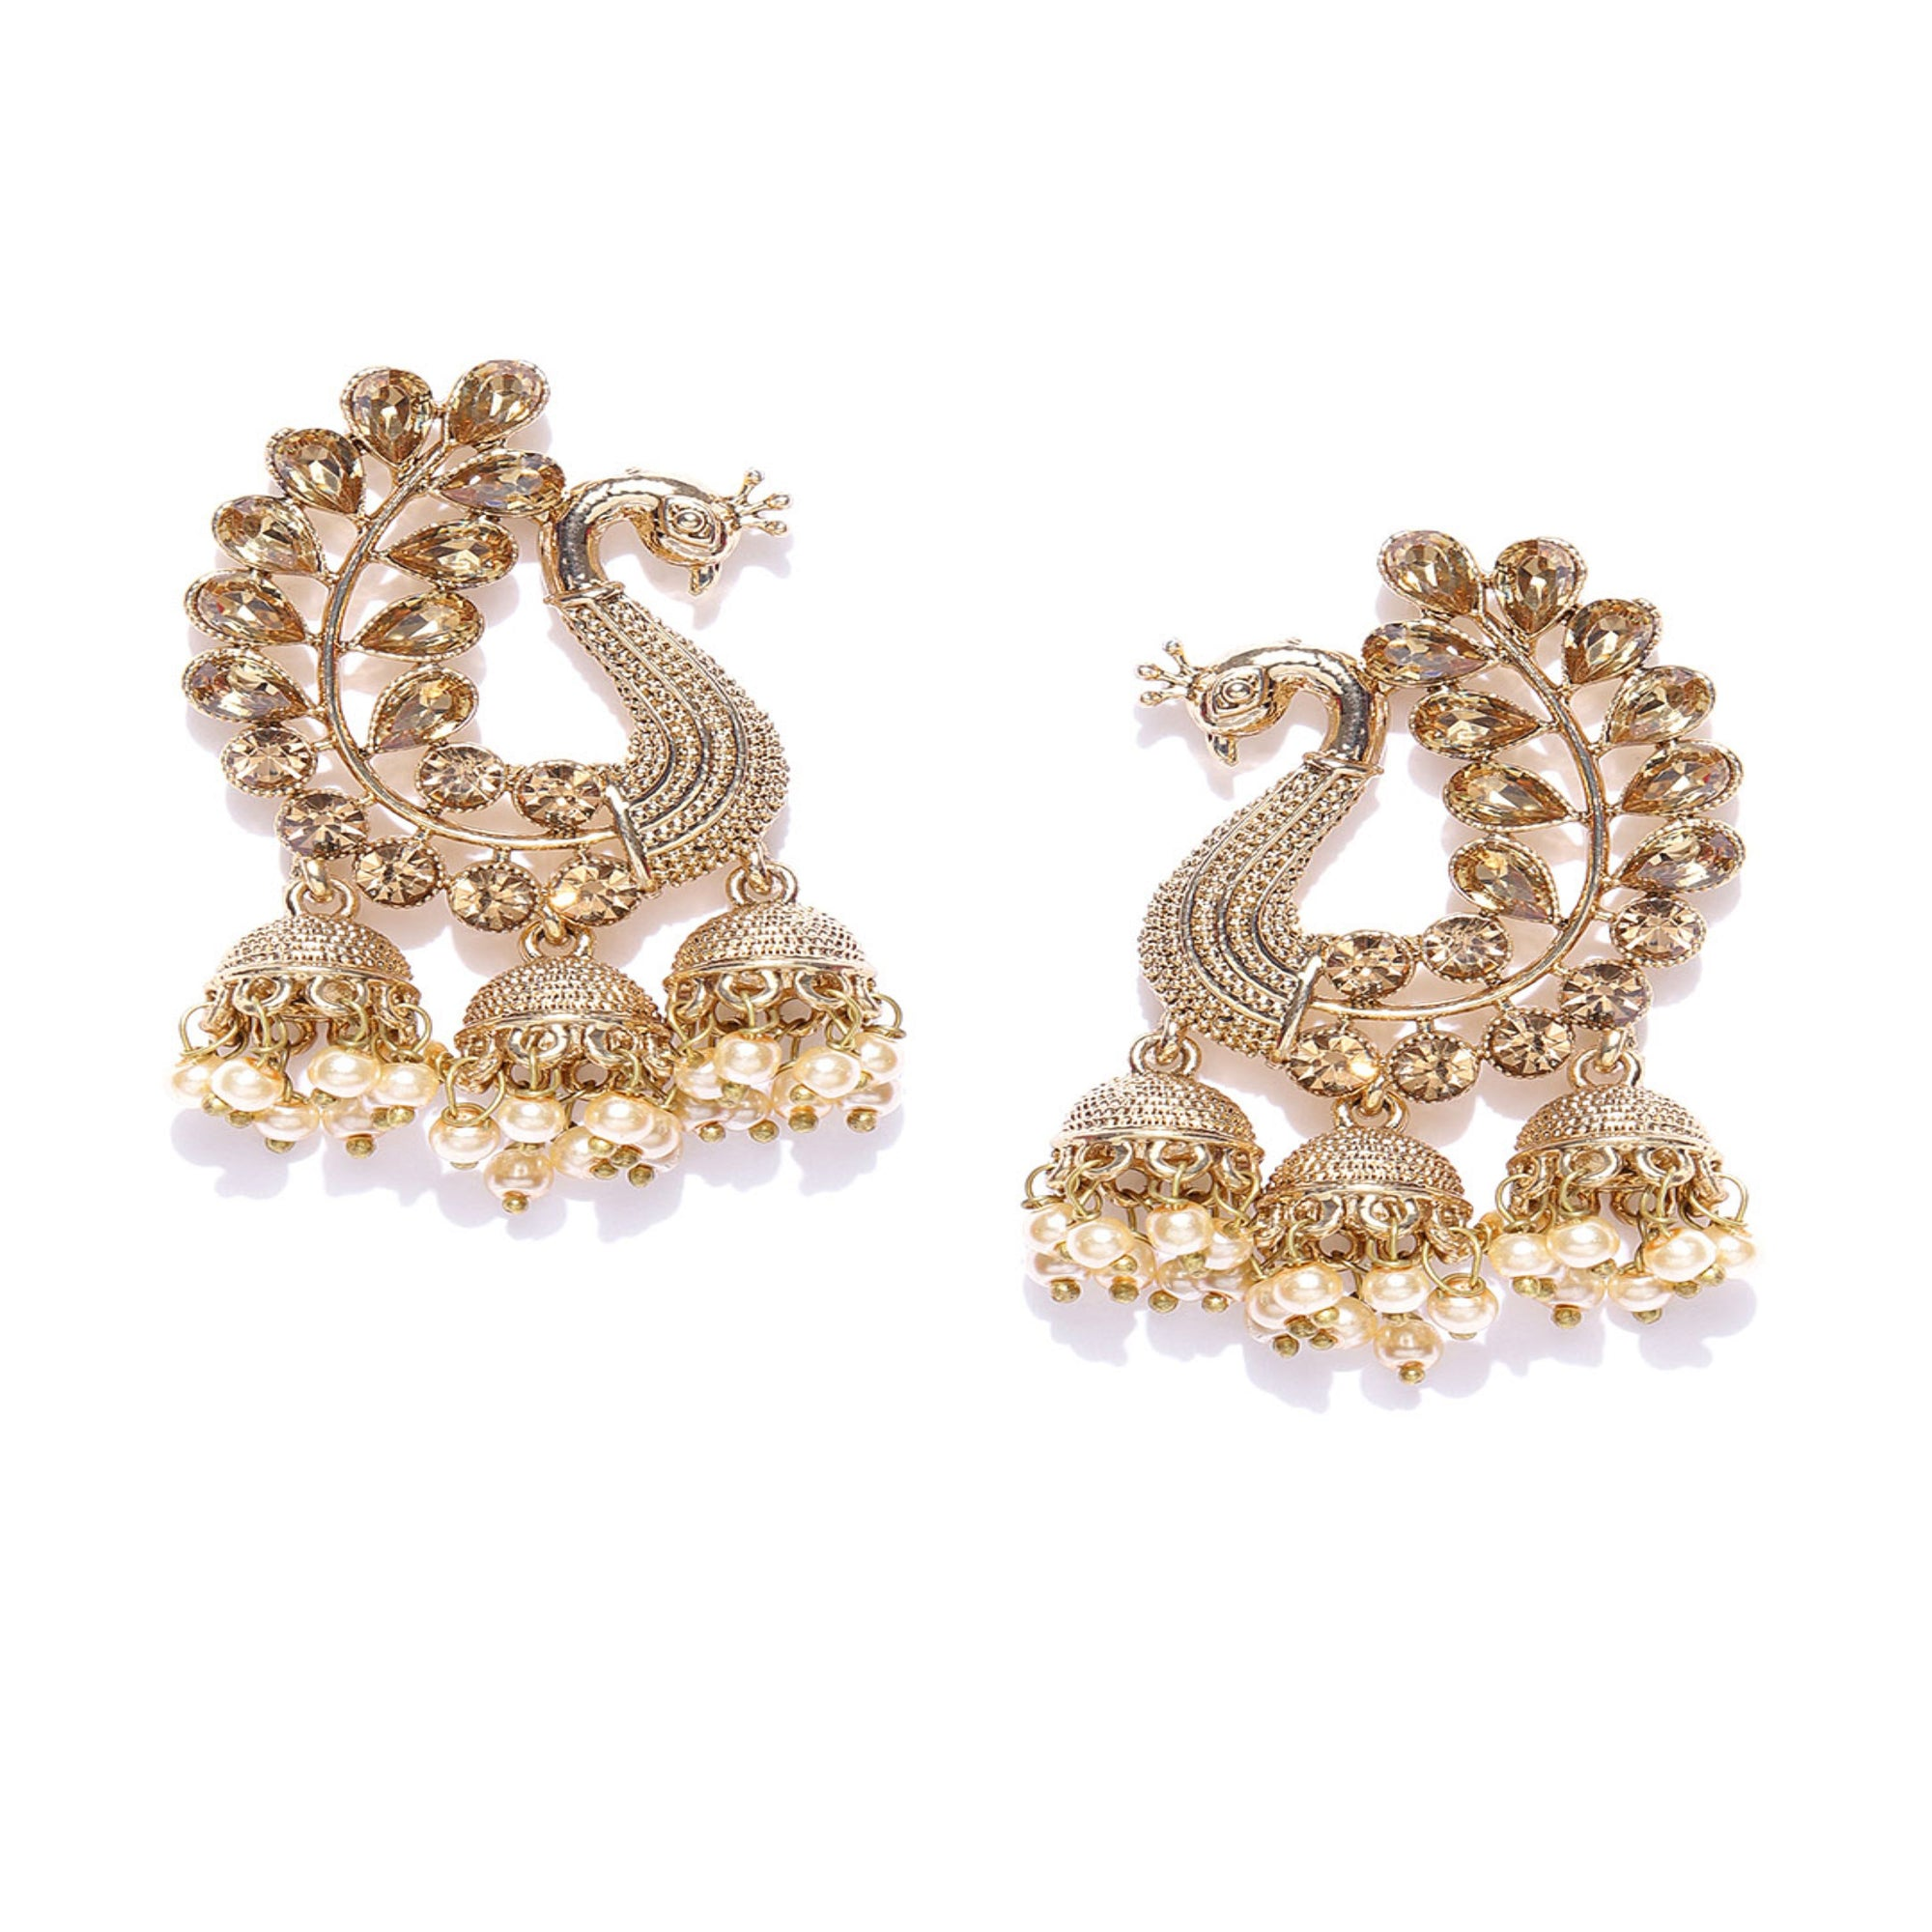 Asmitta Jewellery Gold Zinc Jhumki Earring - EJ735